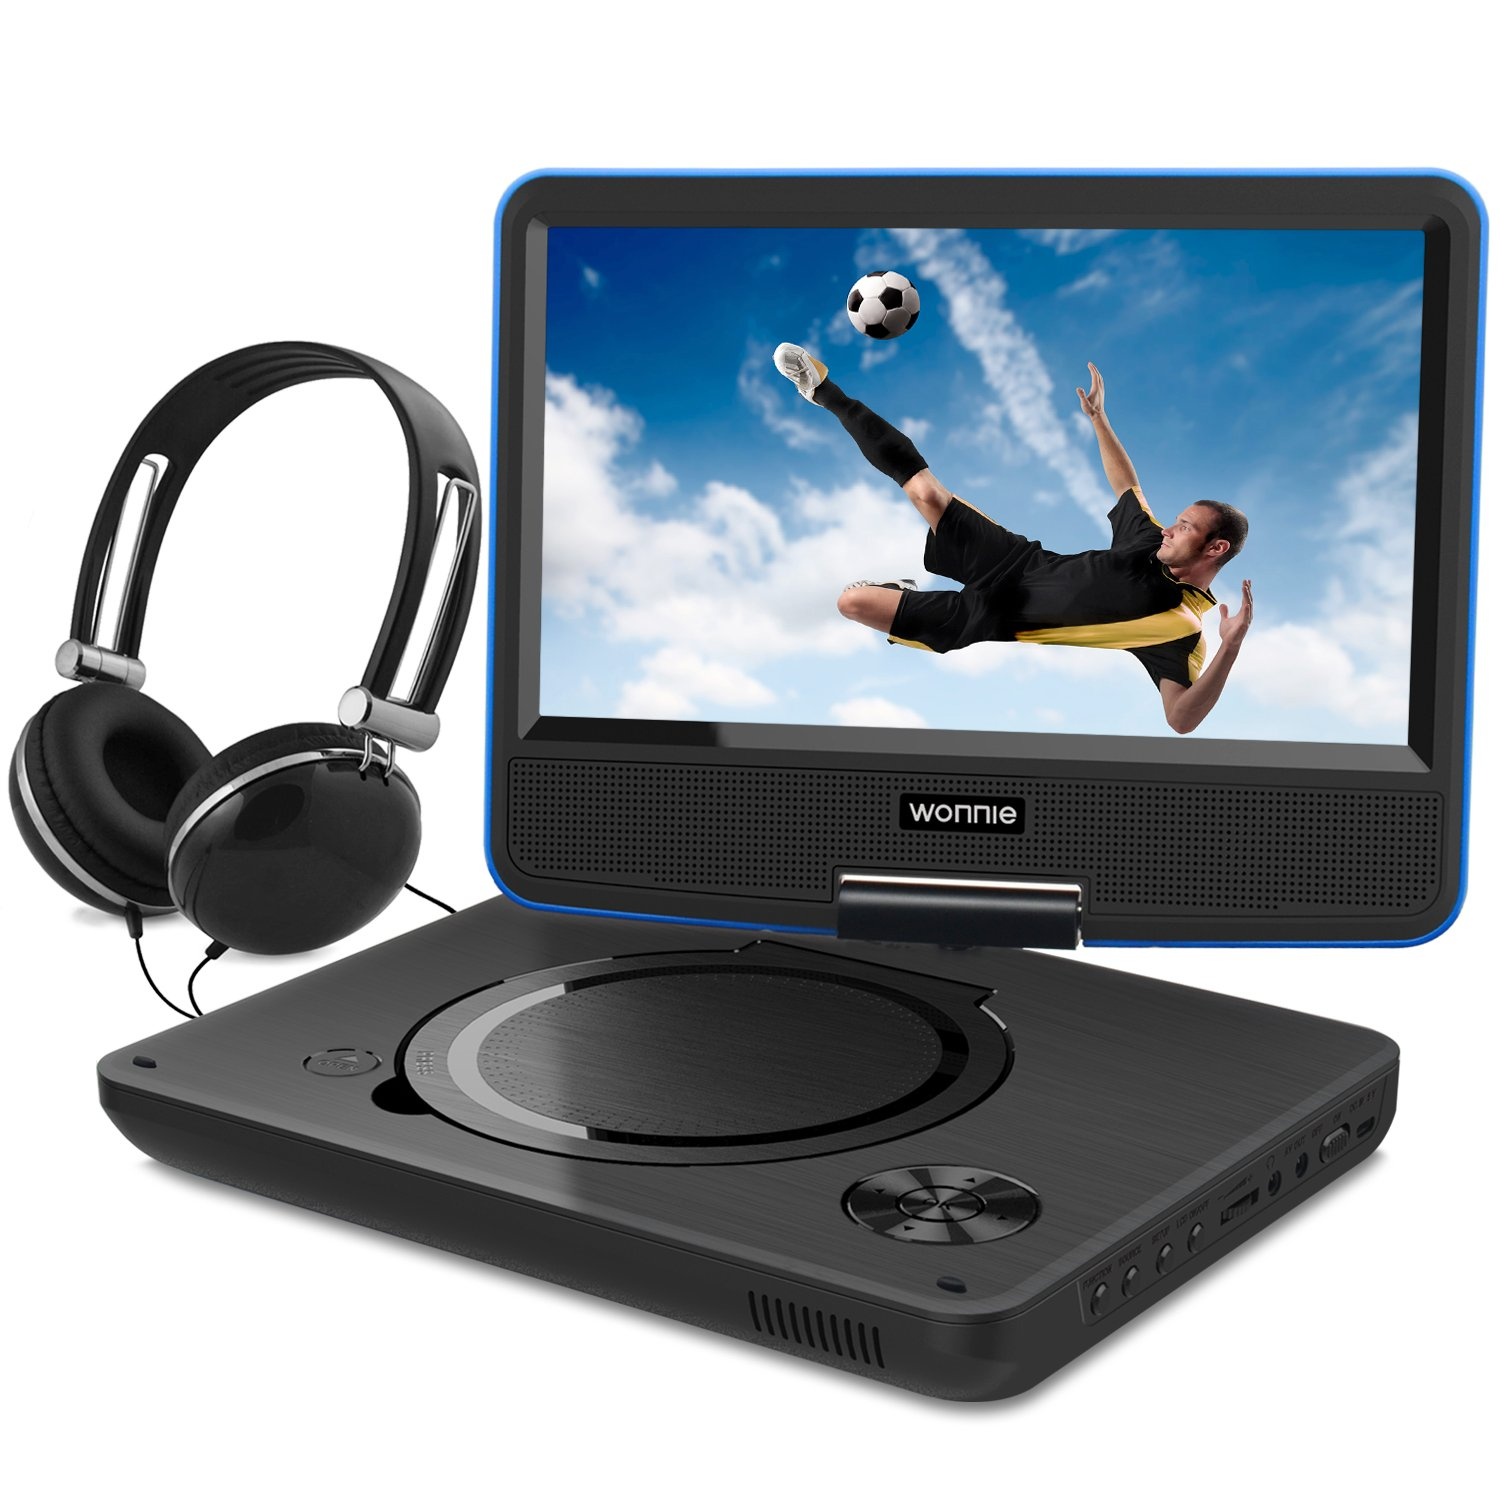 9.5 Inch Portable DVD Player for Kids with Swivel Screen, USB / SD Slot Built in 4 Hours Rechargeable Battery (BLUE) by WONNIE